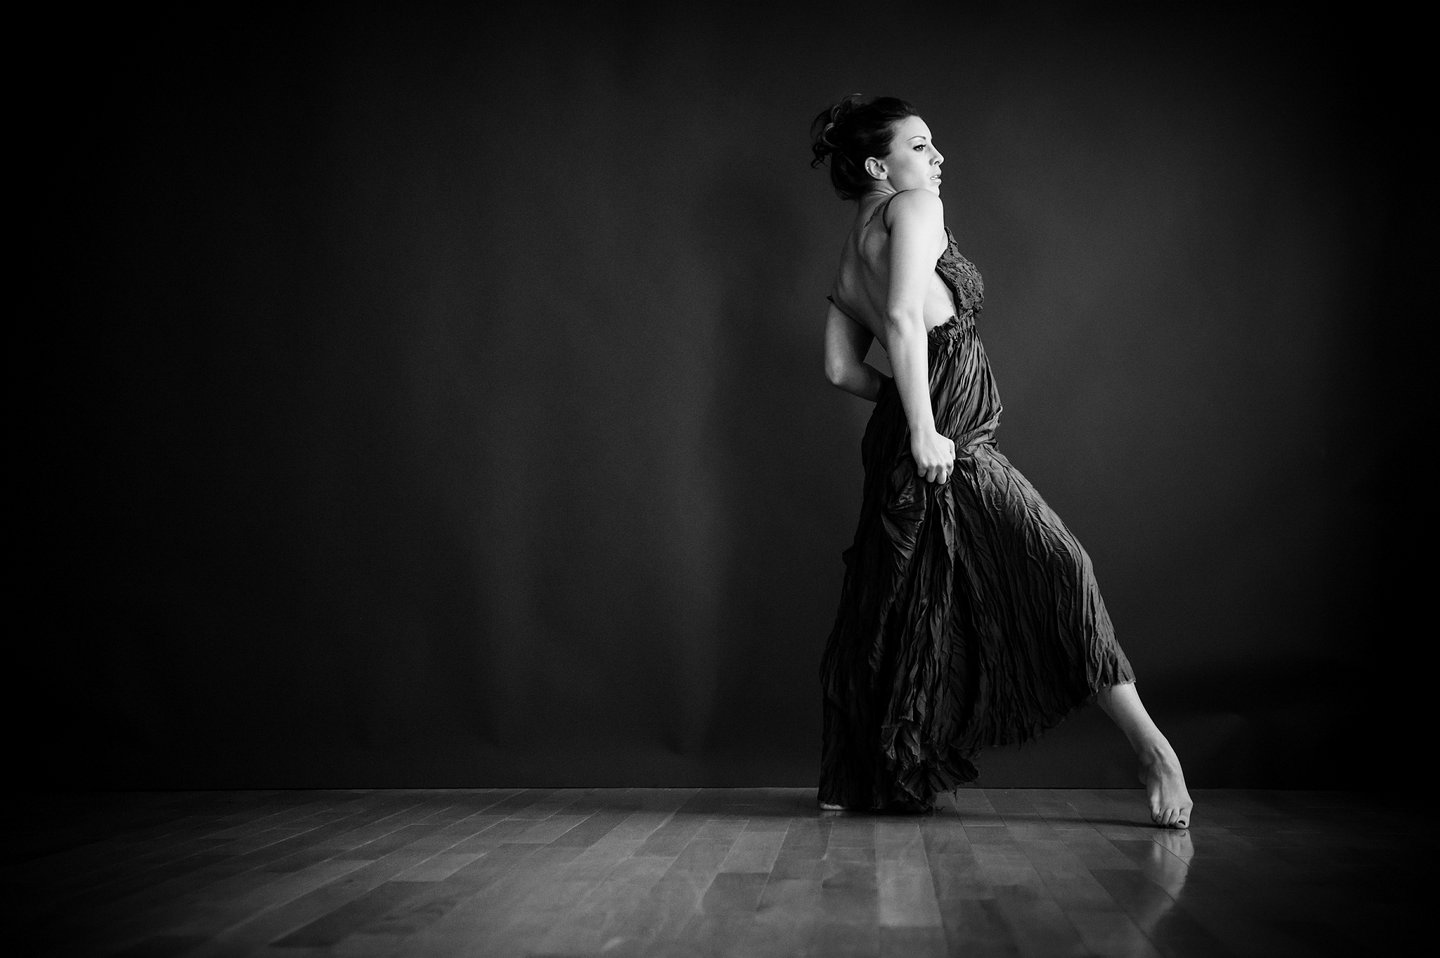 Los Angeles Dance Portrait Photo - Stephanie Abrams - by Tommy Xing Photography 10.jpg